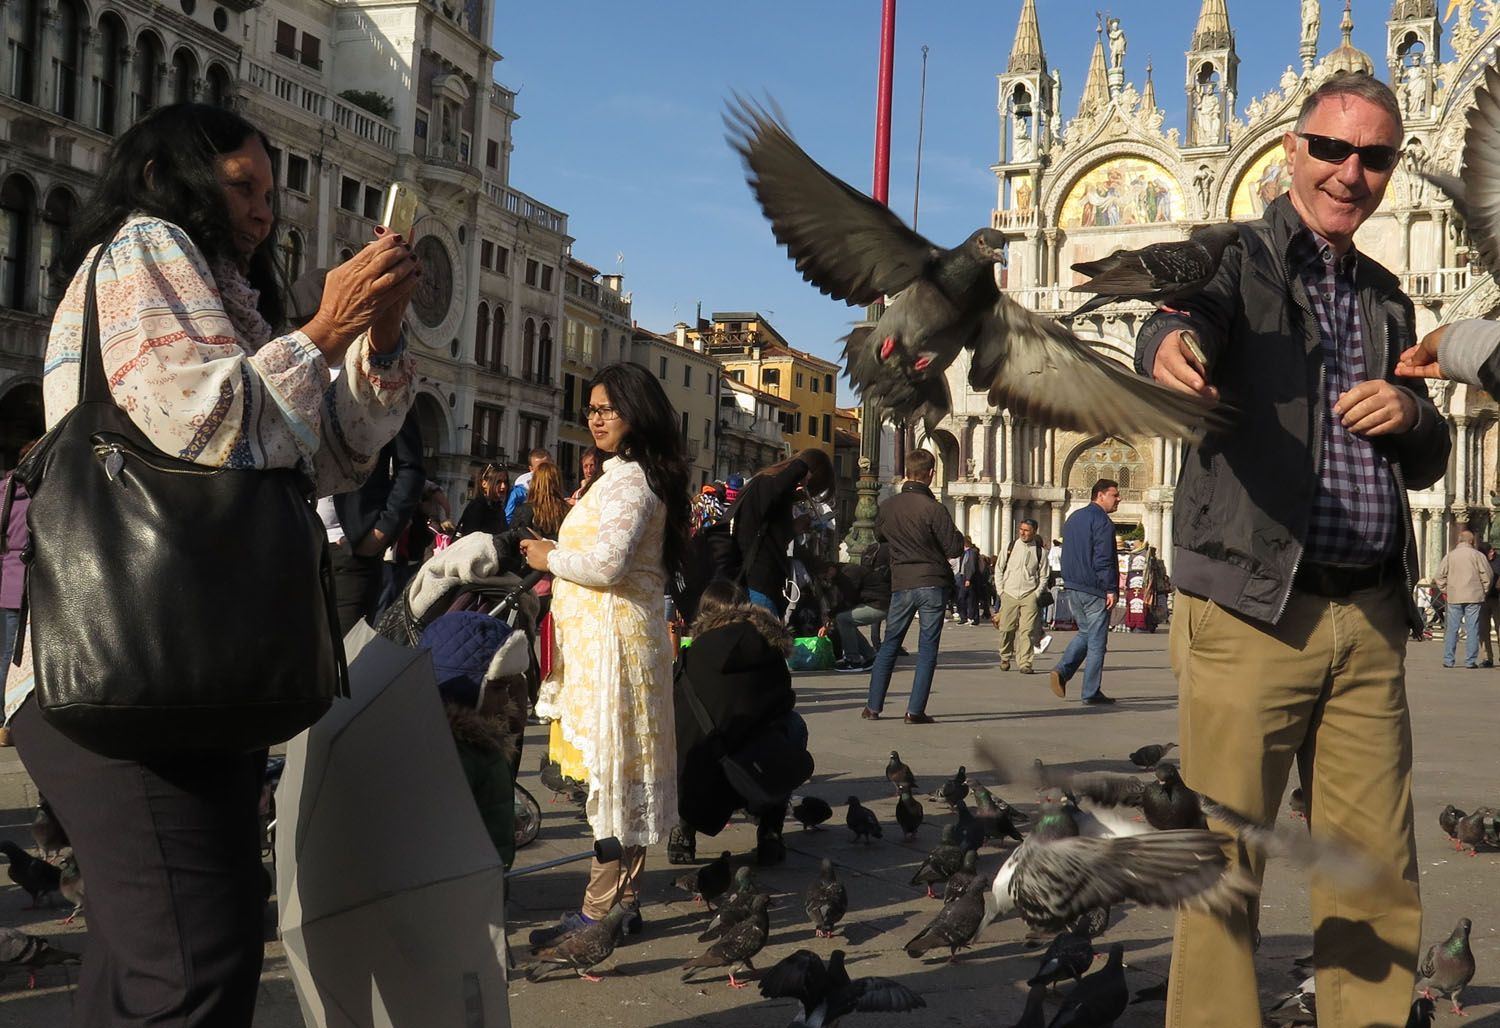 Italy-Venice-Saint-Marks-Square-Pigeons